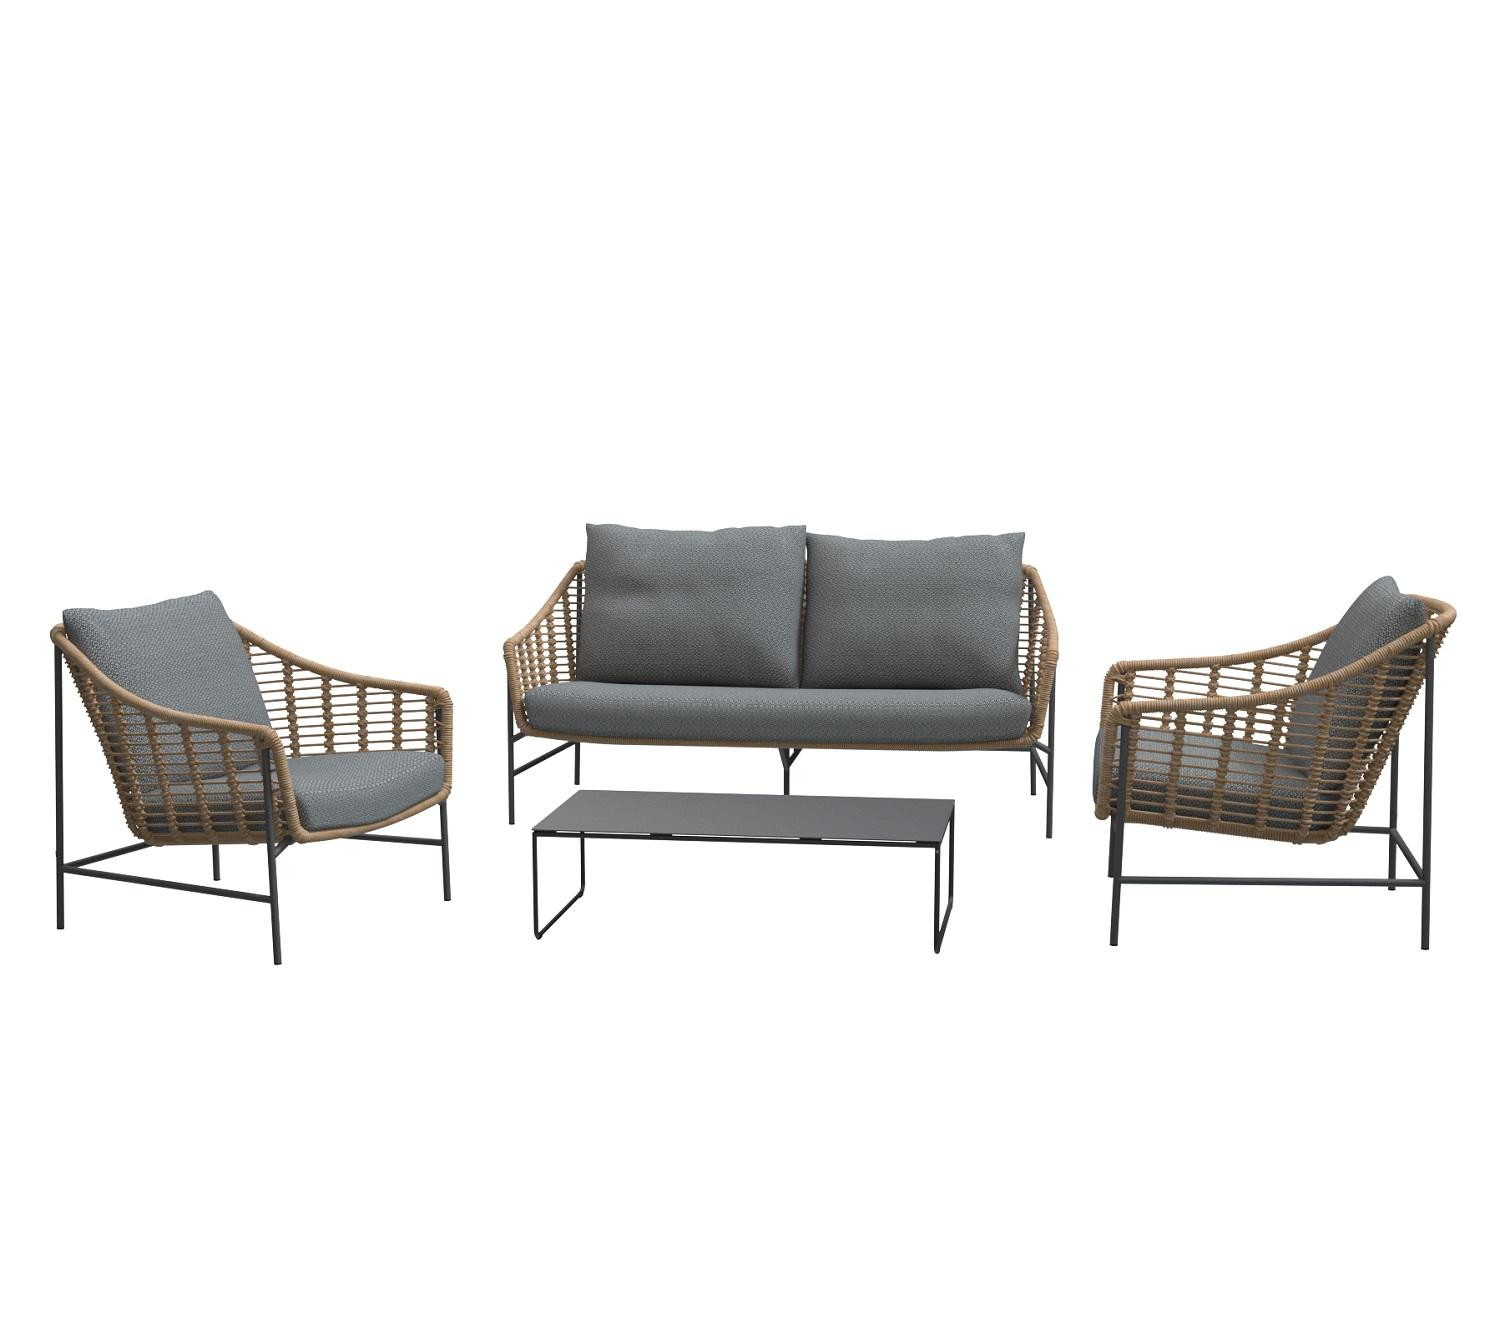 outdoor garden lounge furniture set sofa and 2 armchairs and coffee table all weather rope weave